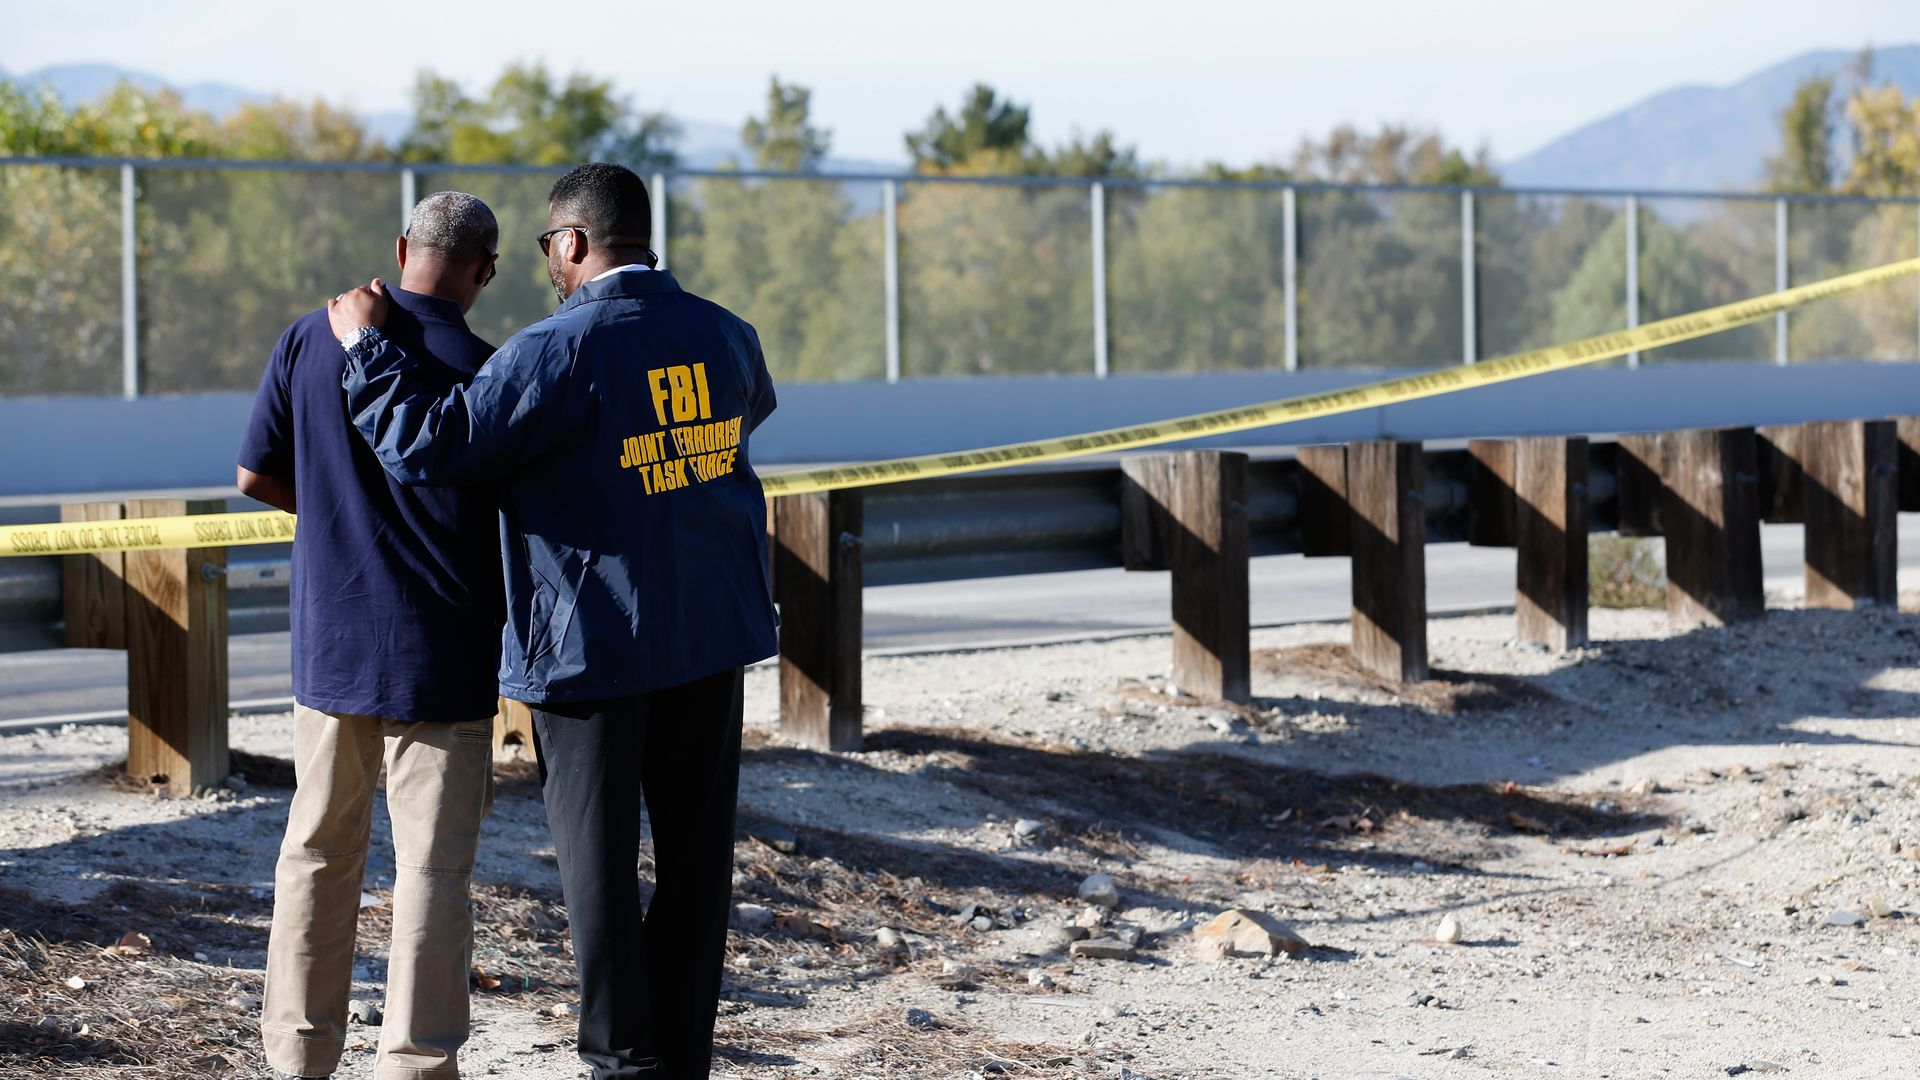 Members of the FBI Joint Terrorism Task Force stand outside of a press conference regarding the shooting that occurred at the Inland Regional Center